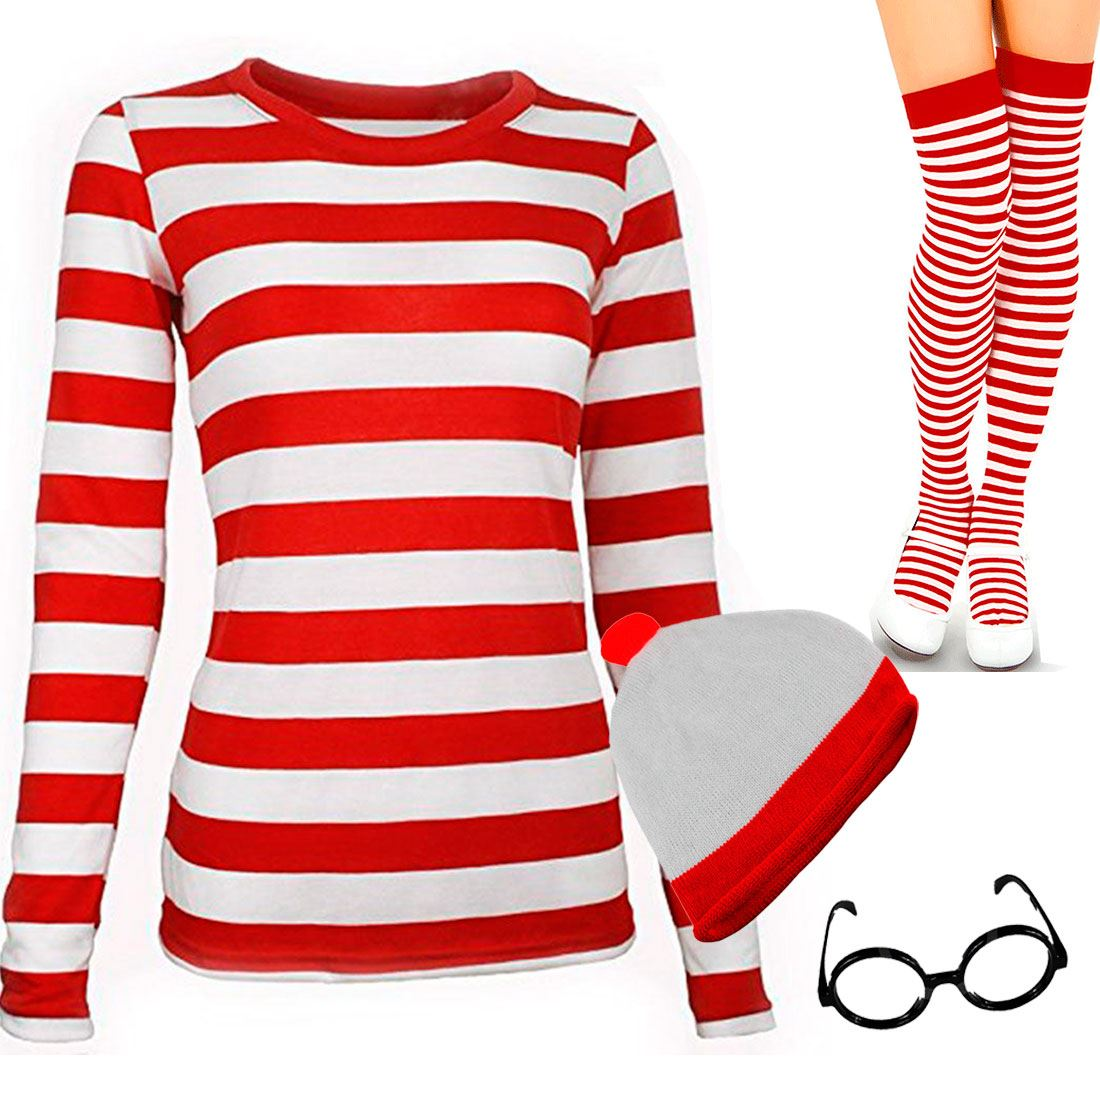 Red-And-White-T-Shirt-Striped-Hat-Socks-Glasses-Set-TShirt-Ladies-World-Book-Day thumbnail 3